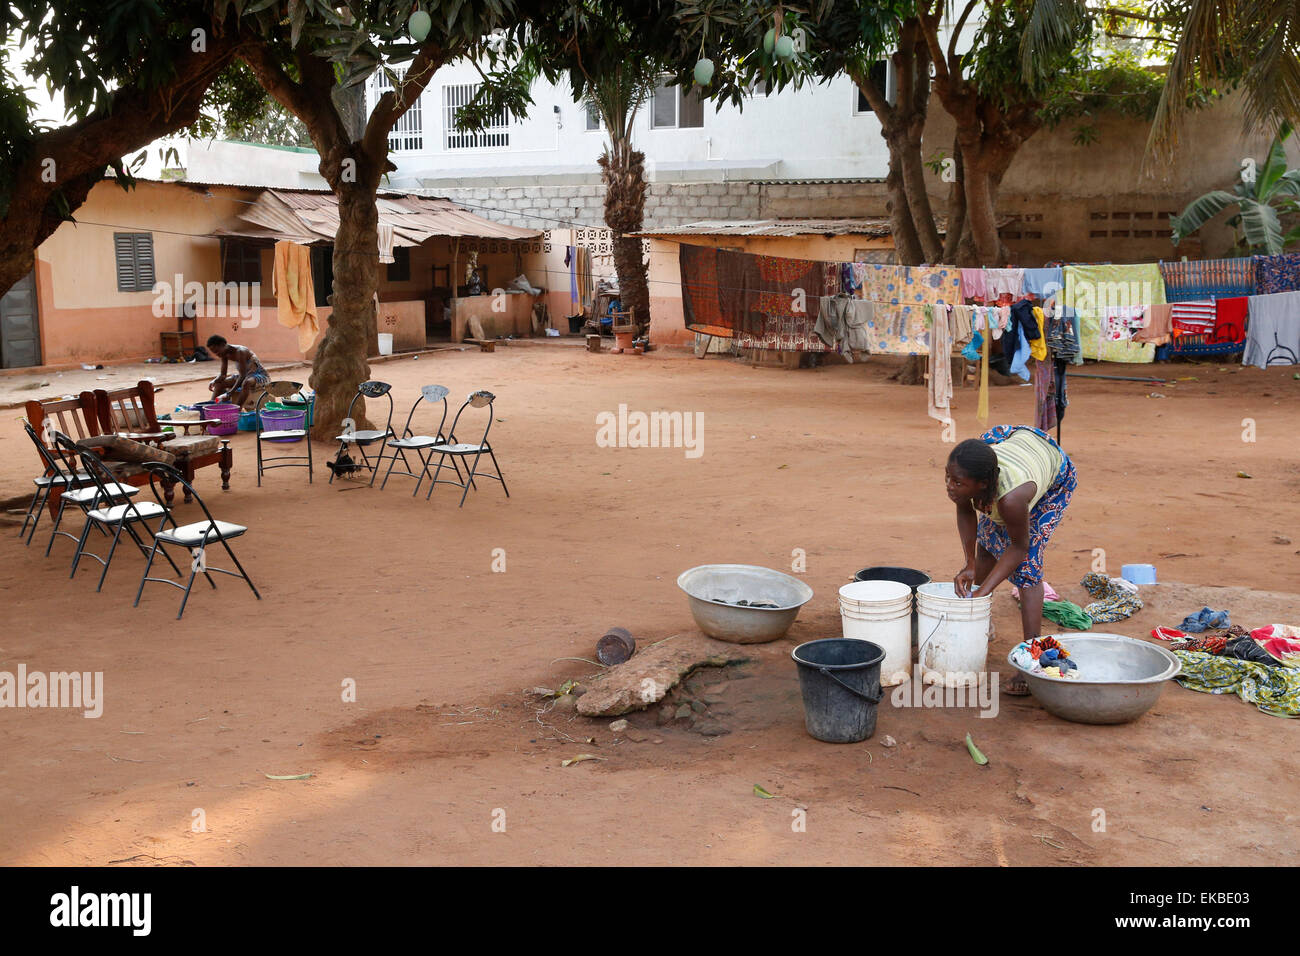 African woman doing the dishes, Lome, Togo, West Africa, Africa - Stock Image